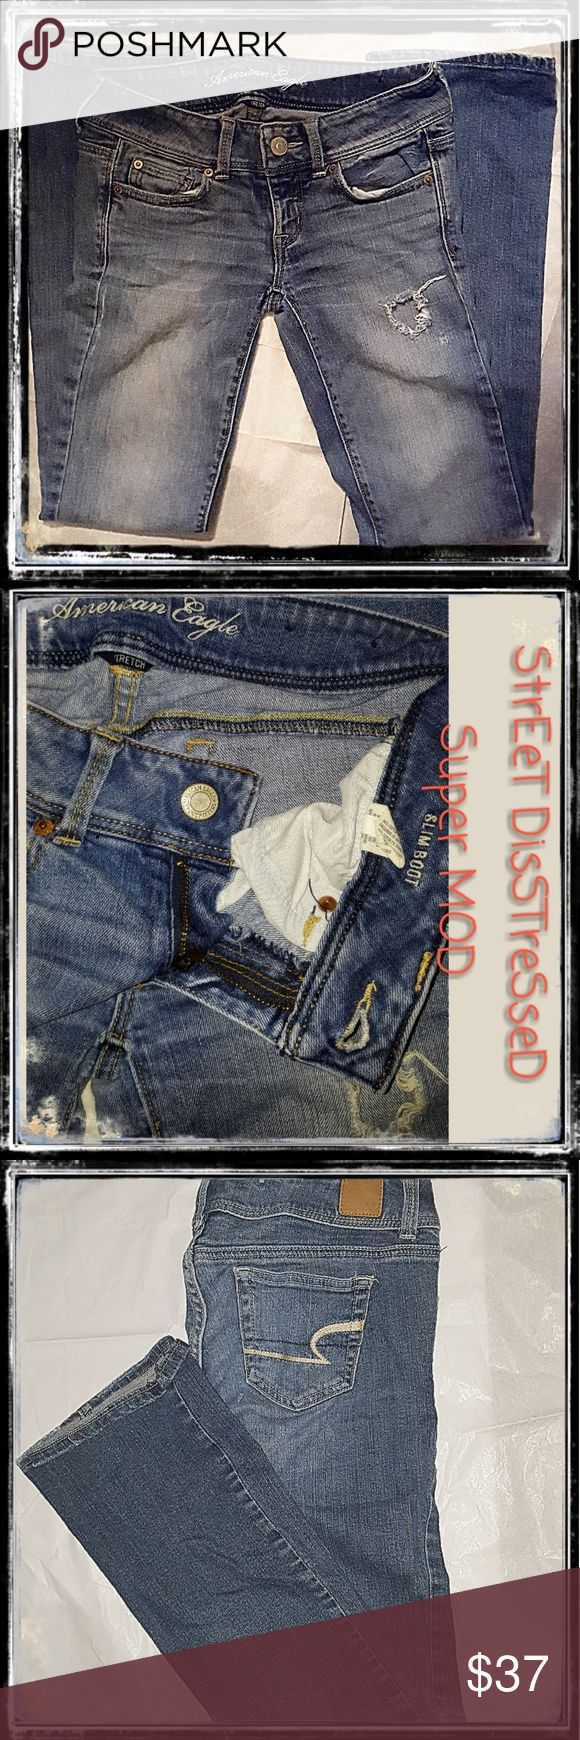 American eagle  street distressed super mod jeans American  eagle  slim boot  stretch  these were factory distressed   in a more aggressive  street distress in a slightly darker denim ...and through loving use they  have perfect not worn out no frayed cuffs but a super mod hipster comfy jean .. Size 2 American eagle  Jeans Boot Cut